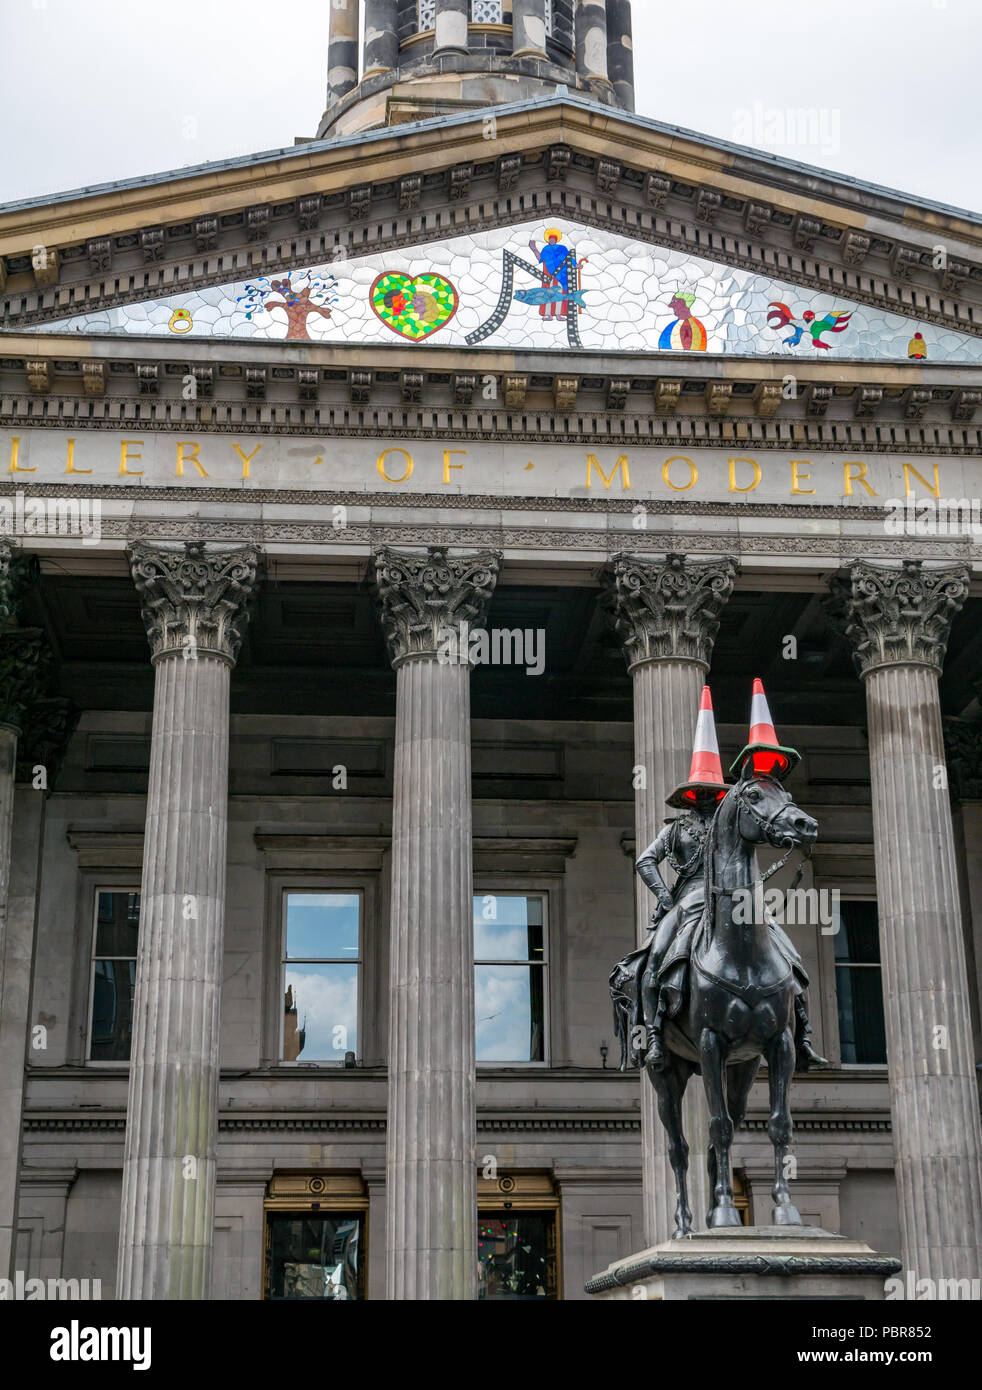 Equestrian statue Duke of Wellington with traffic cones, Gallery of Modern Art, GoMA, Royal Exchange Square, Glasgow, Scotland, UK - Stock Image